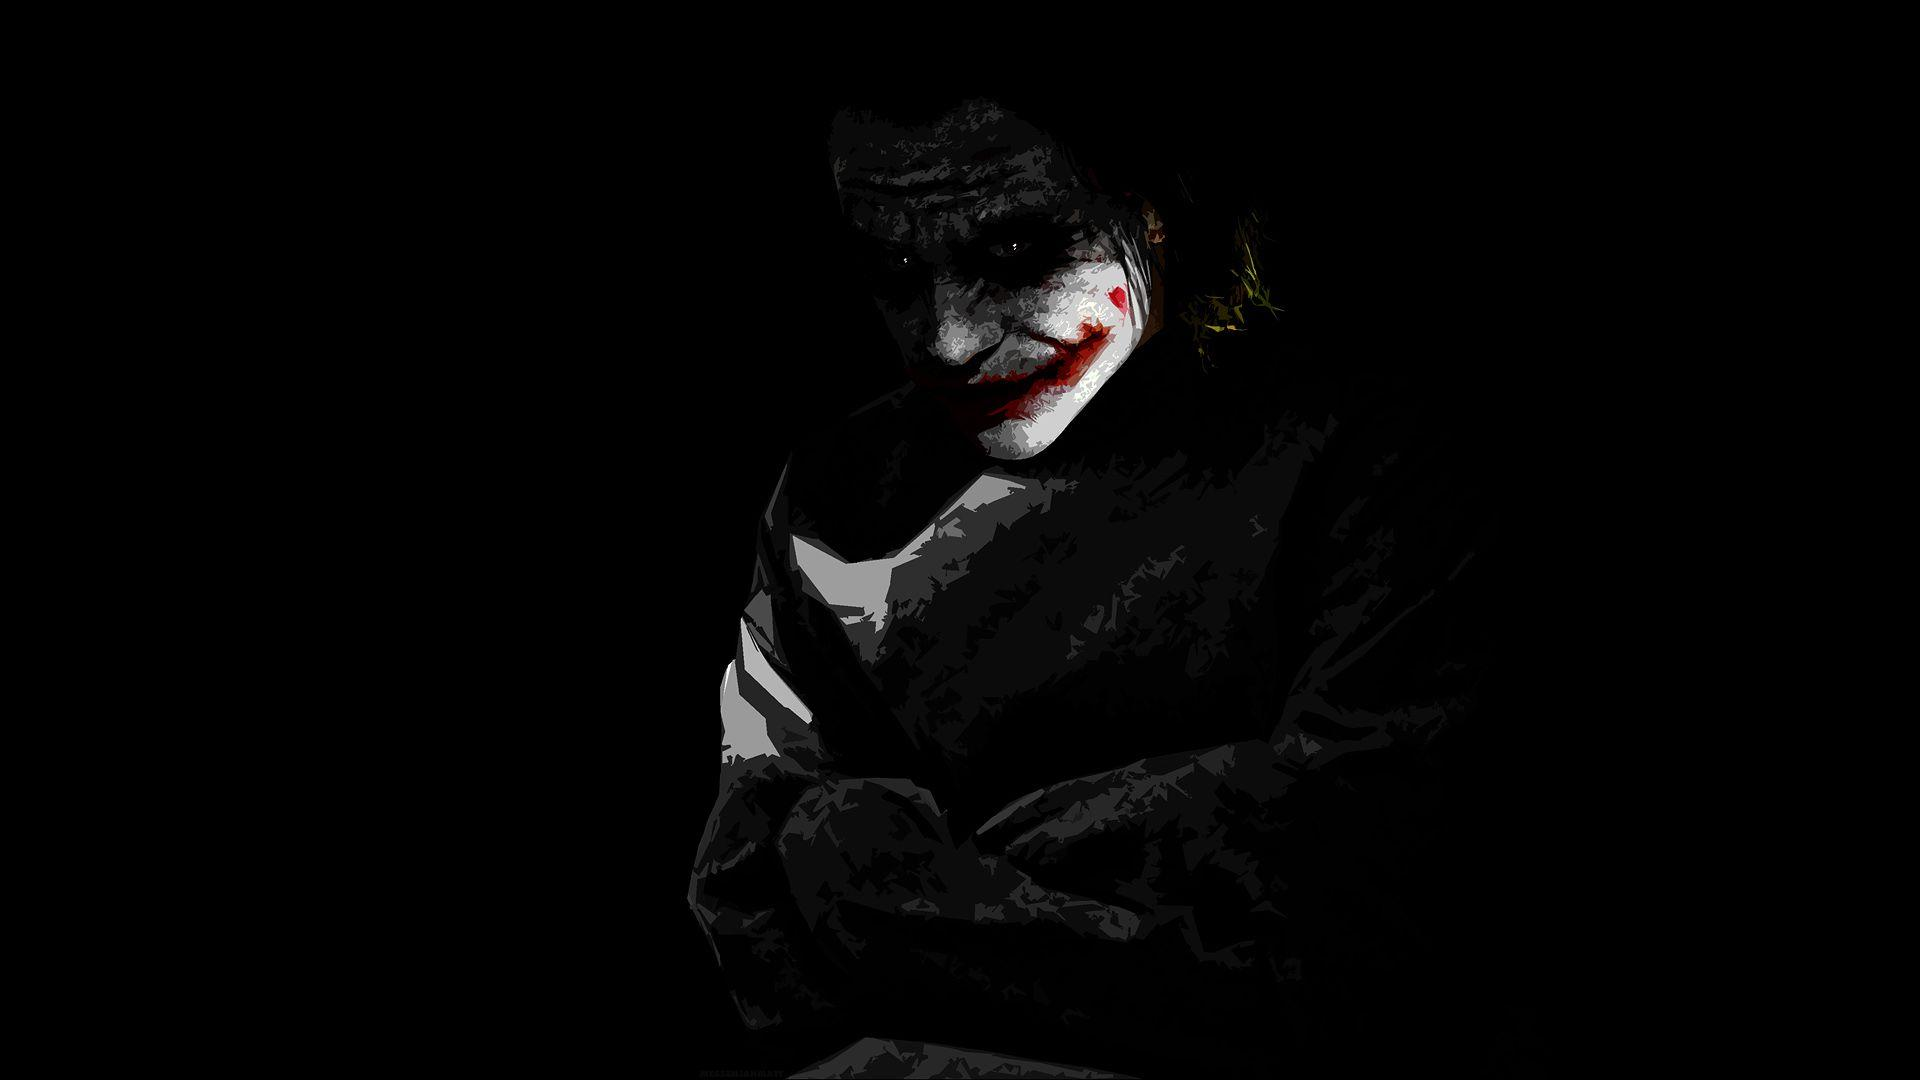 The Joker HD Wallpapers 1080p - Wallpaper Cave